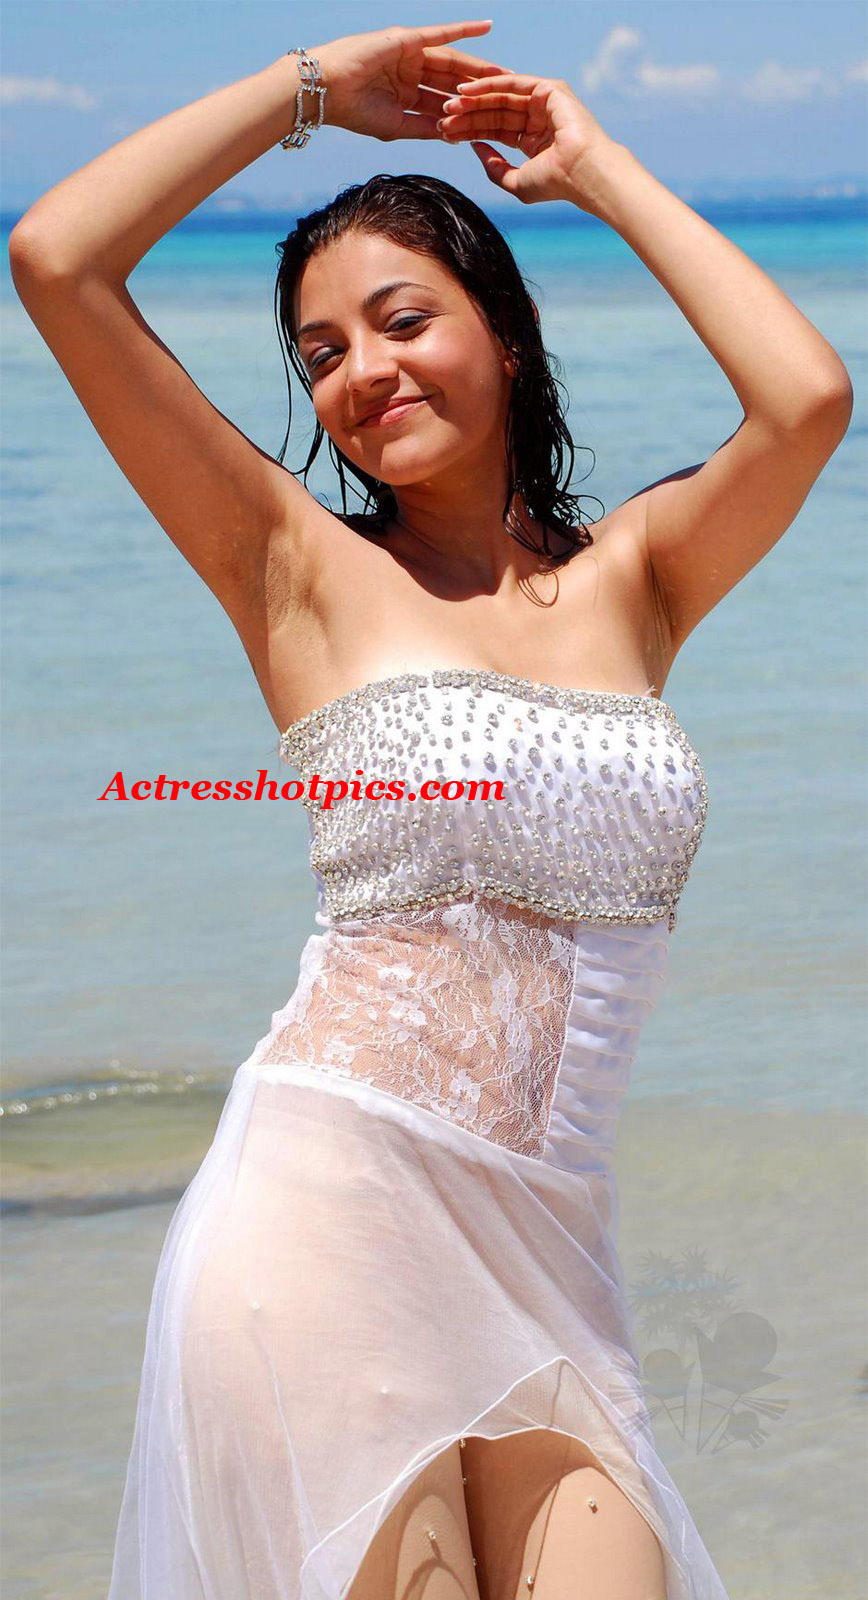 sexy transparent white dress images of telugu actress kajal agarwal By making him a great blowjob, she agreed without any words at first anal ...